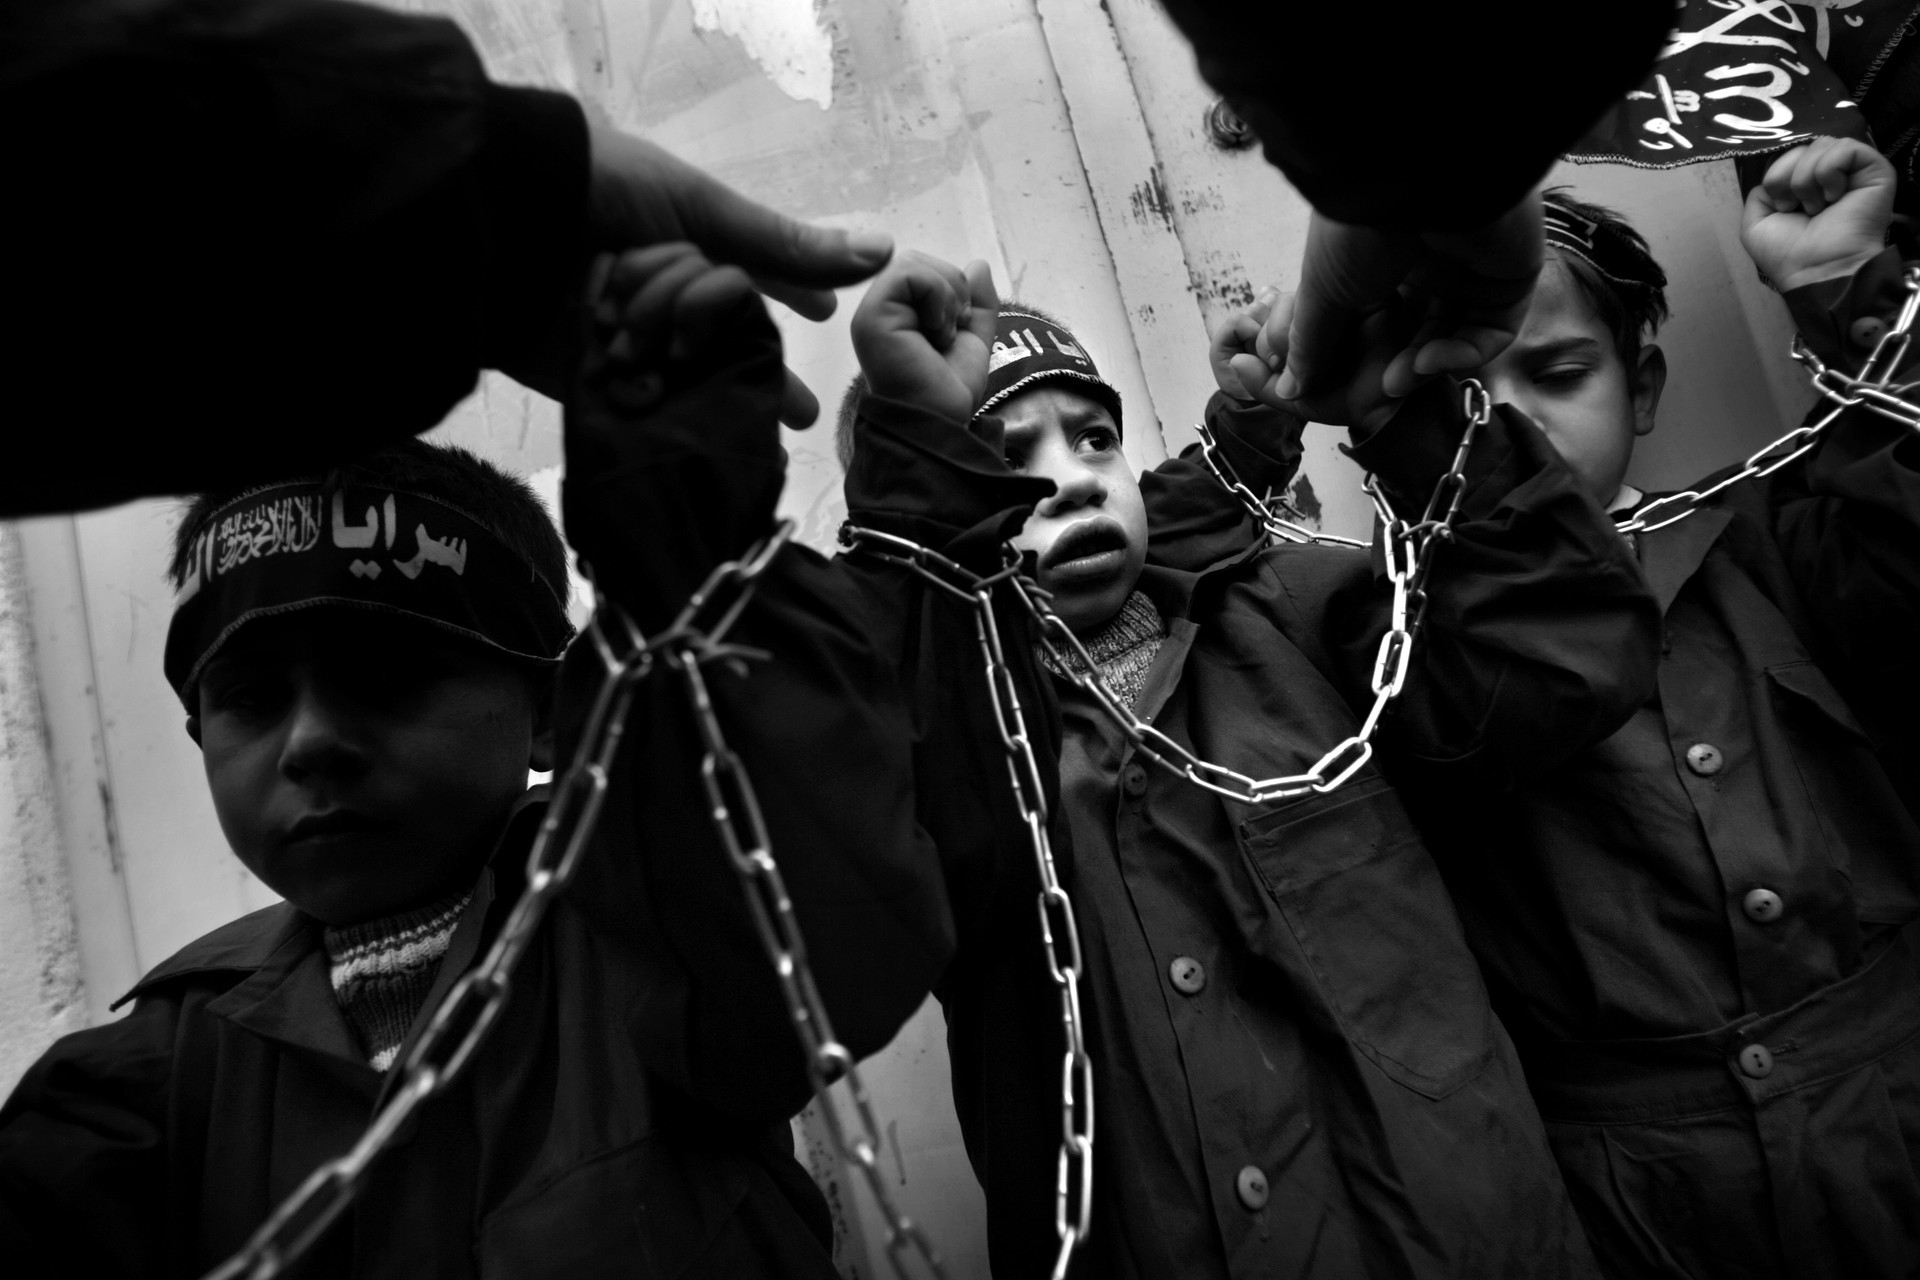 In a conflict which has claimed hundreds of  young people – Israeli and Palestinian – injury and death become the stuff of child's play.  Here, Palestinian children, shackled in chains at a Hamas rally, are used as cultural propaganda for Hamas.